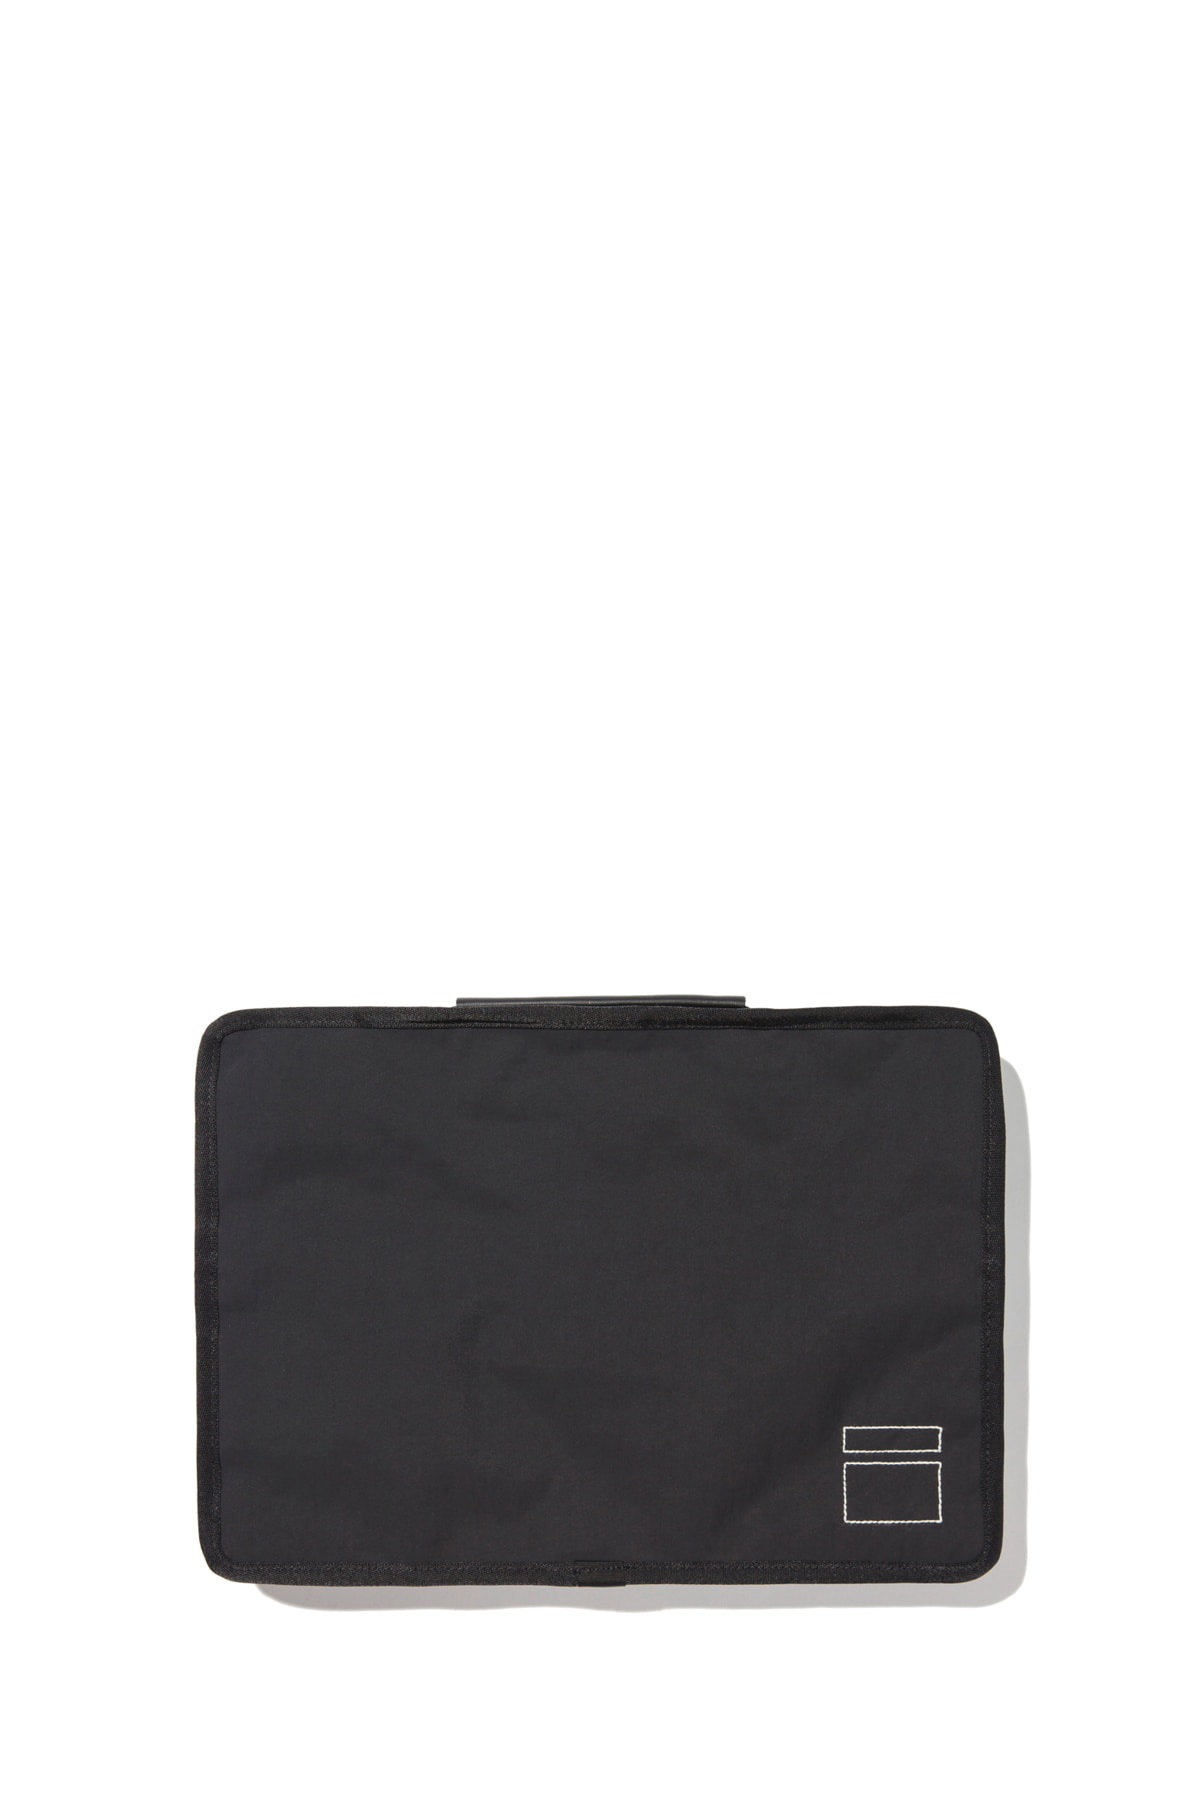 Blankof : CLG 01 AM13 Macbook Case 13 (Black)